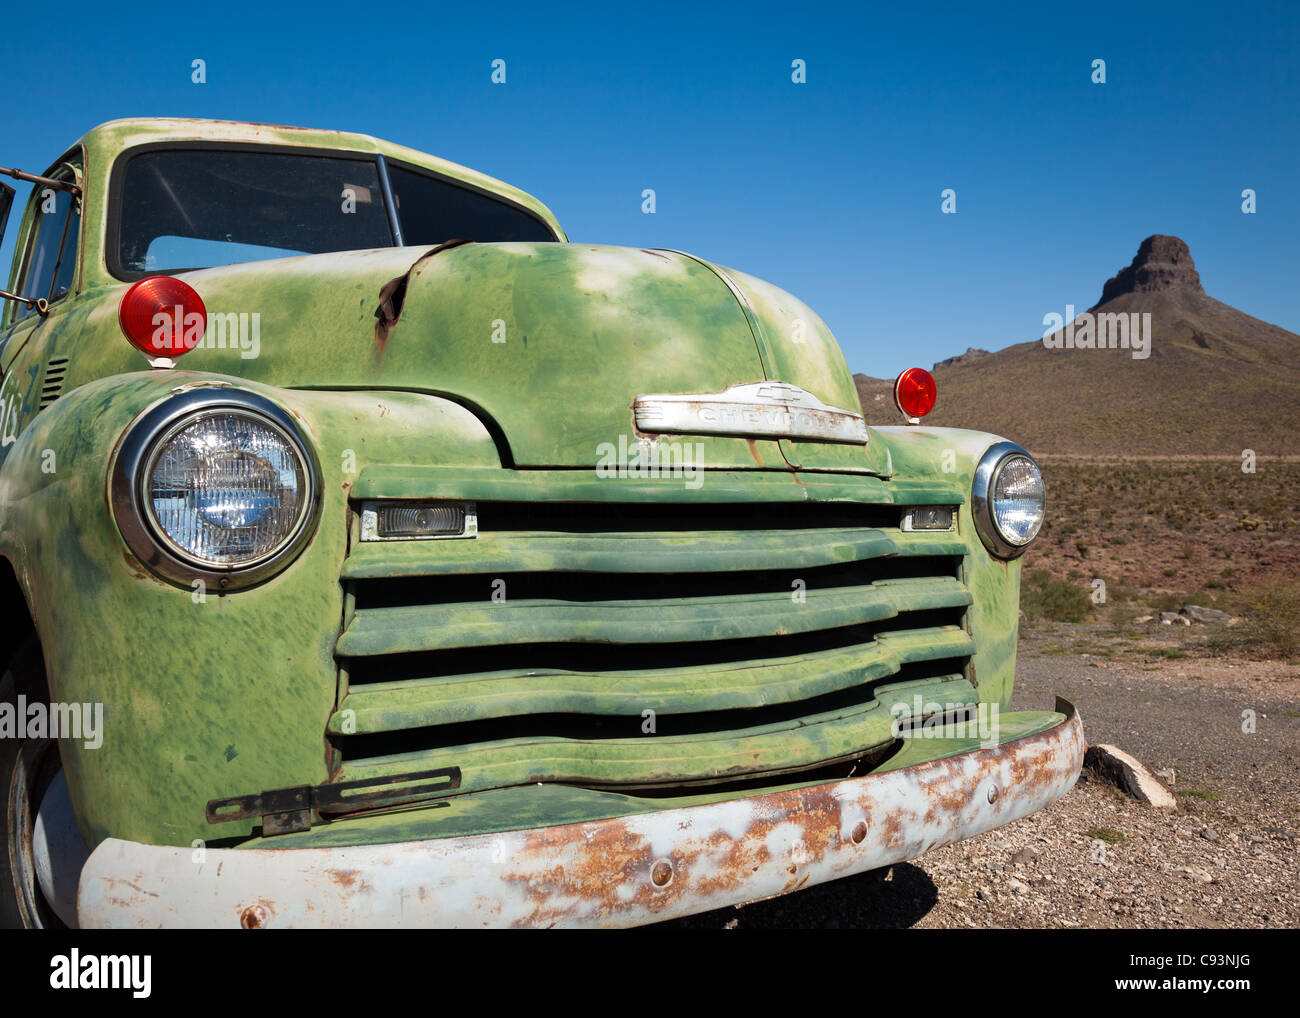 The front of an old, green, rusting and abandoned Chevrolet truck on a sunny day along Route 66, Arizona, USA Stock Photo